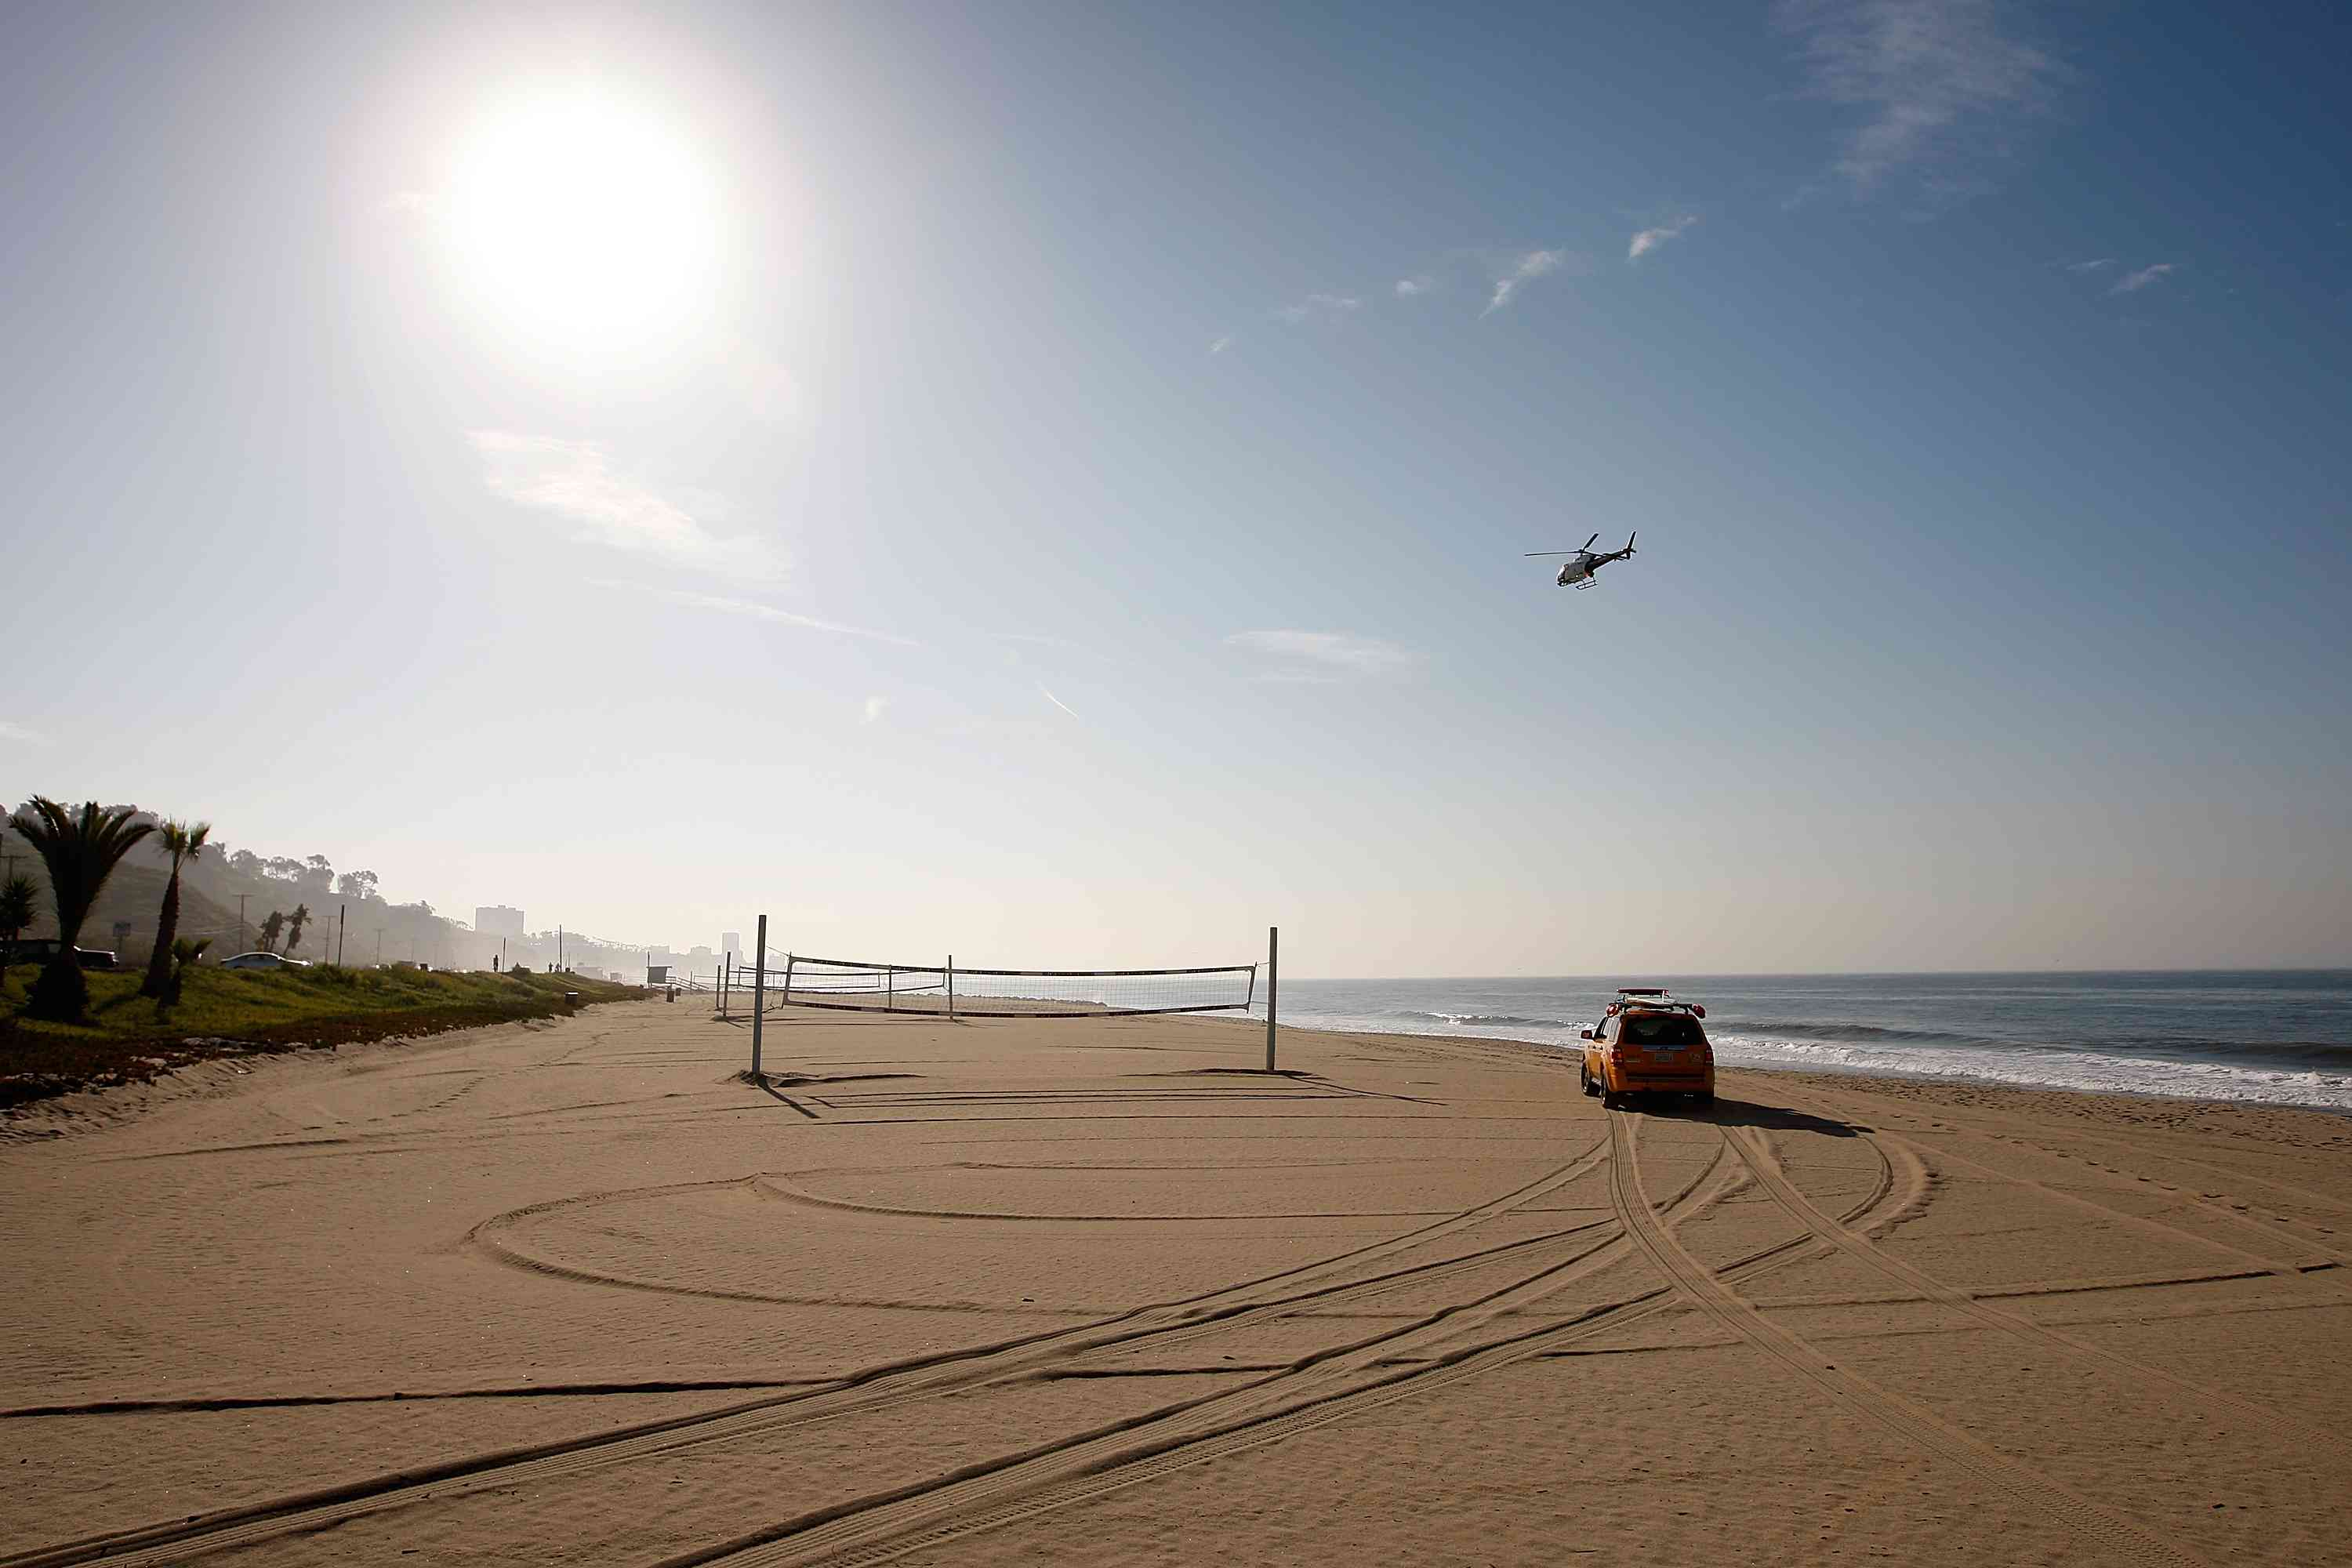 car on an empty beach with volleyball nets. There is a helicopter in the sky above